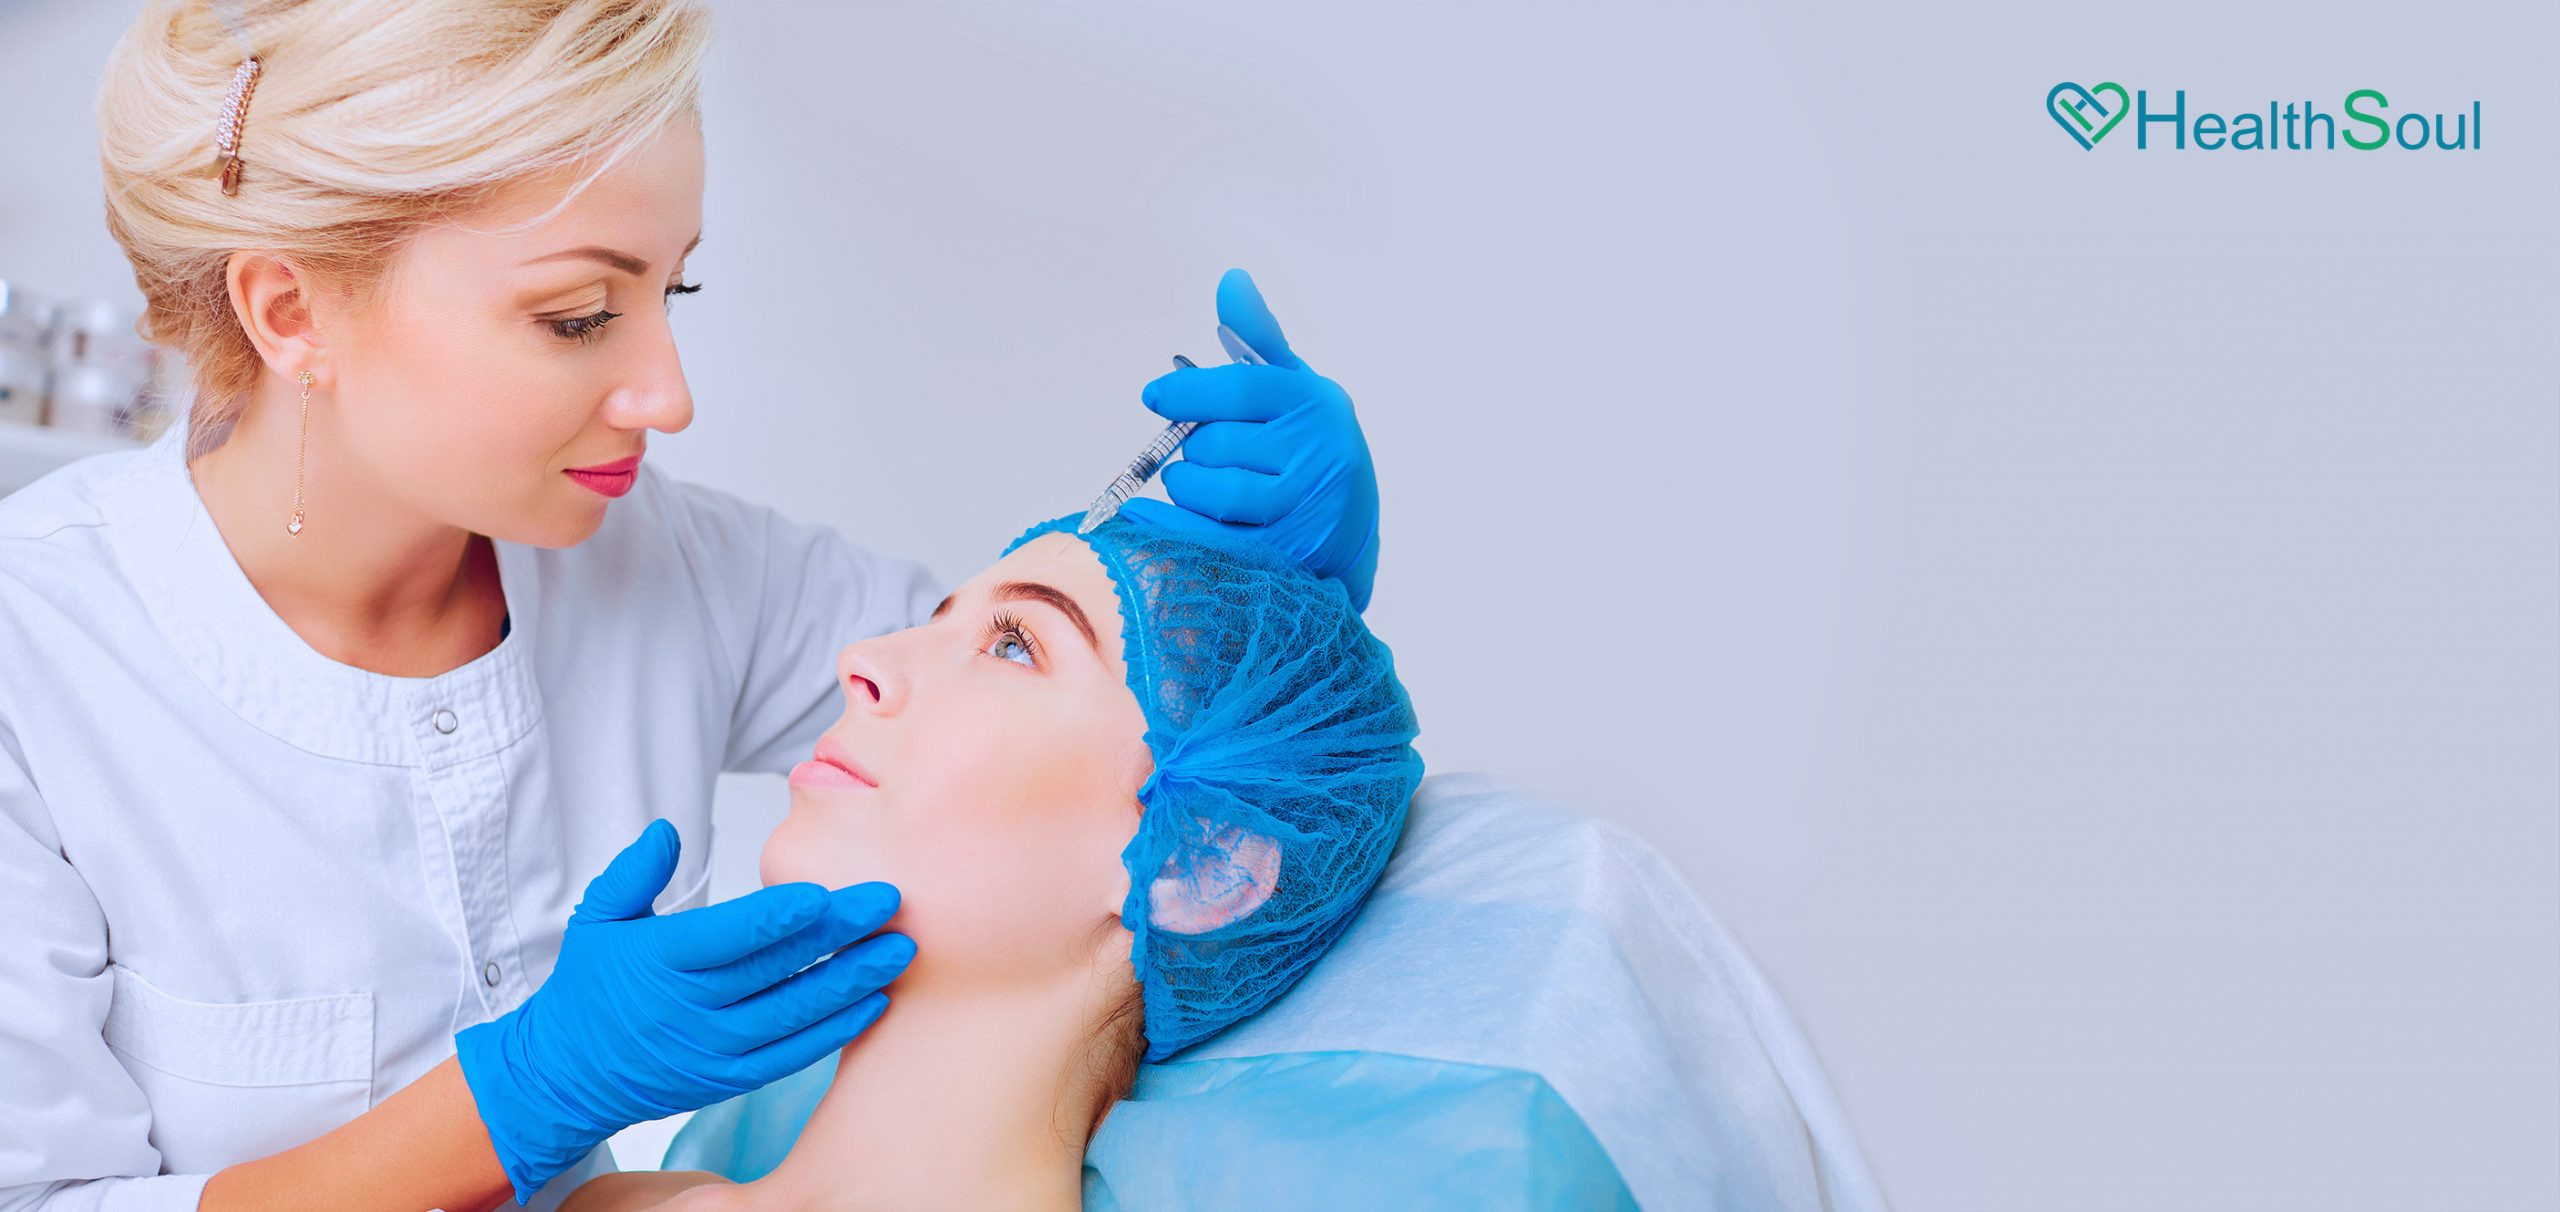 5 Myths About Facial Cosmetic Treatments You Shouldn't Believe | HealthSoul